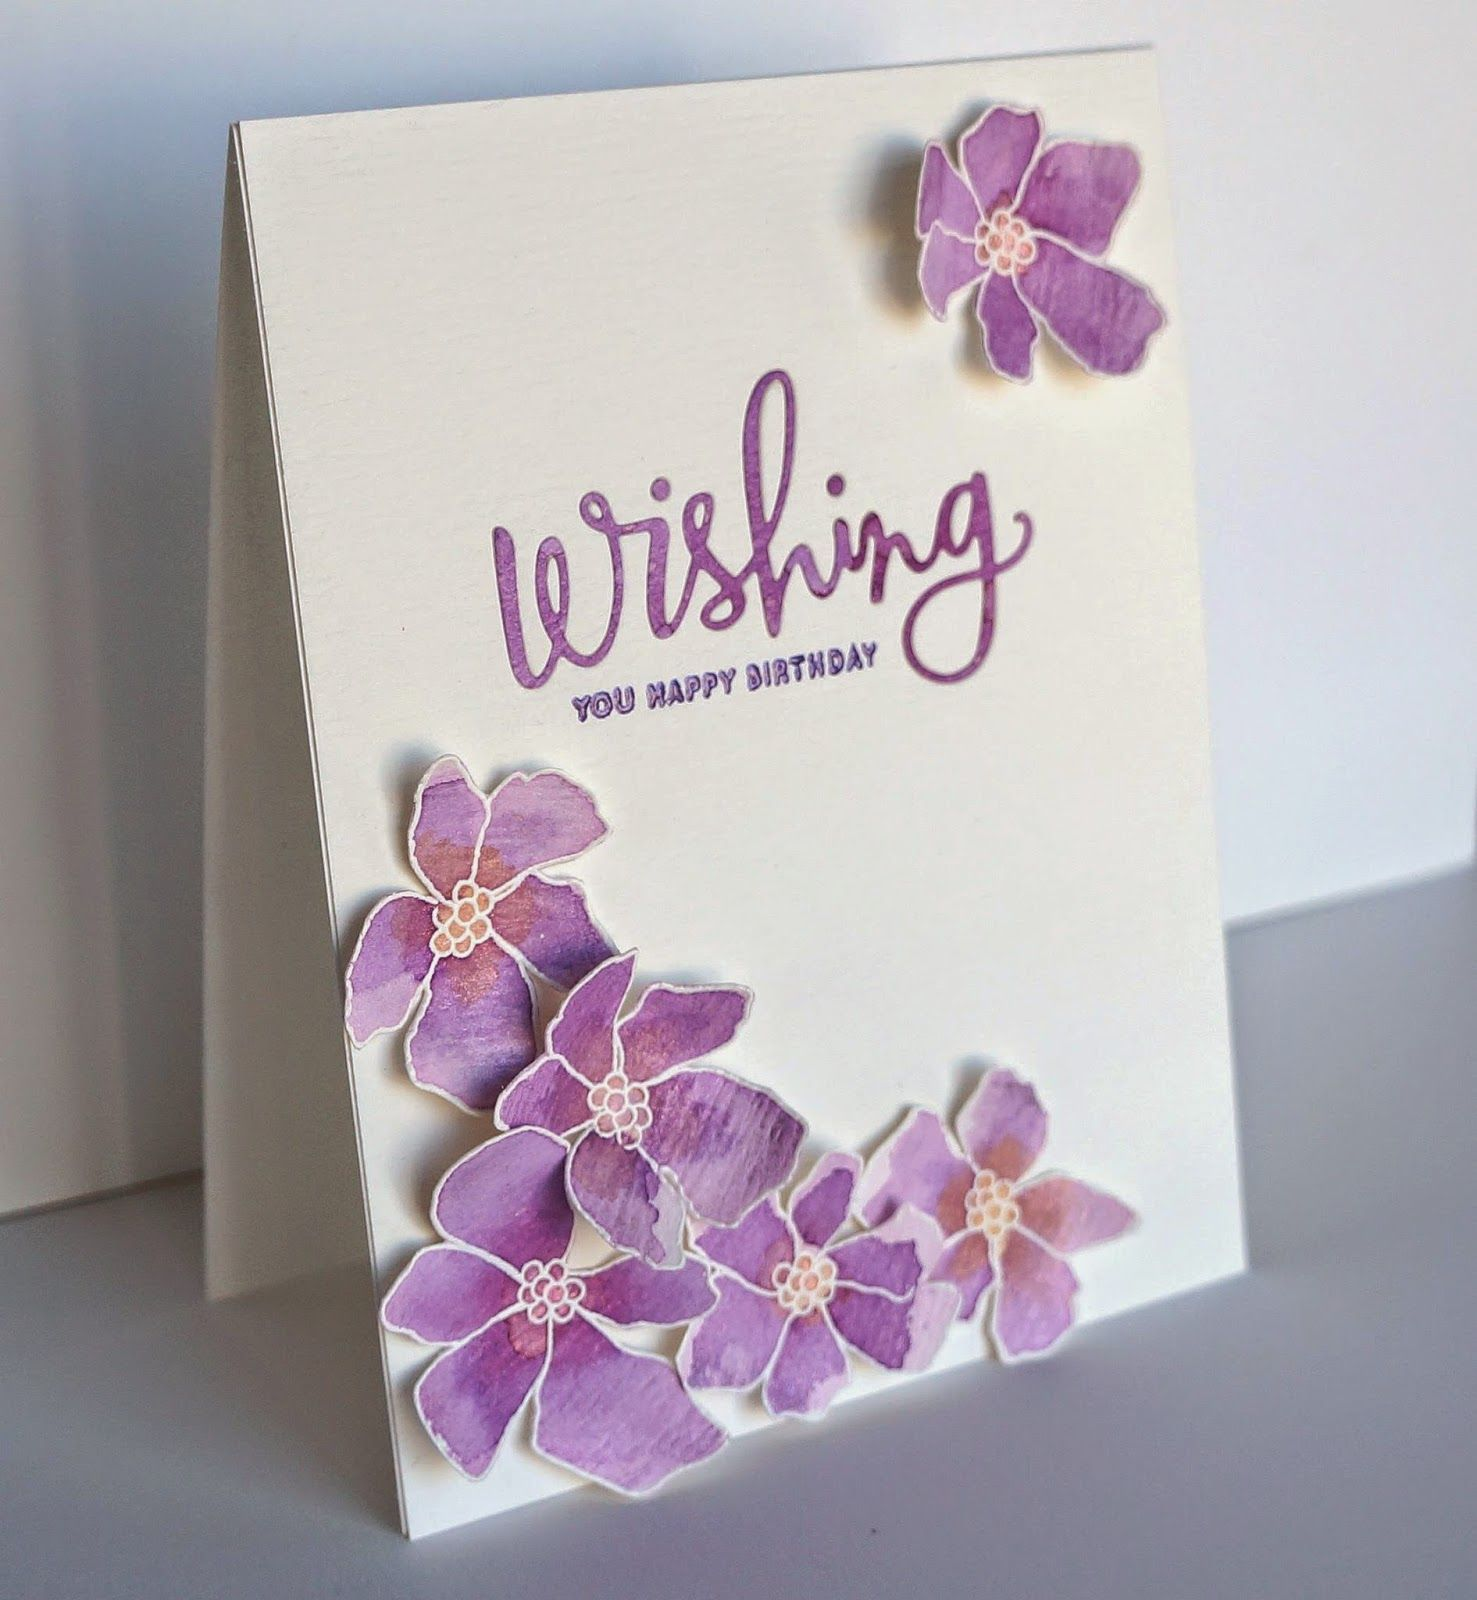 Artful flowers are stamped and cut on watercolor paper to create